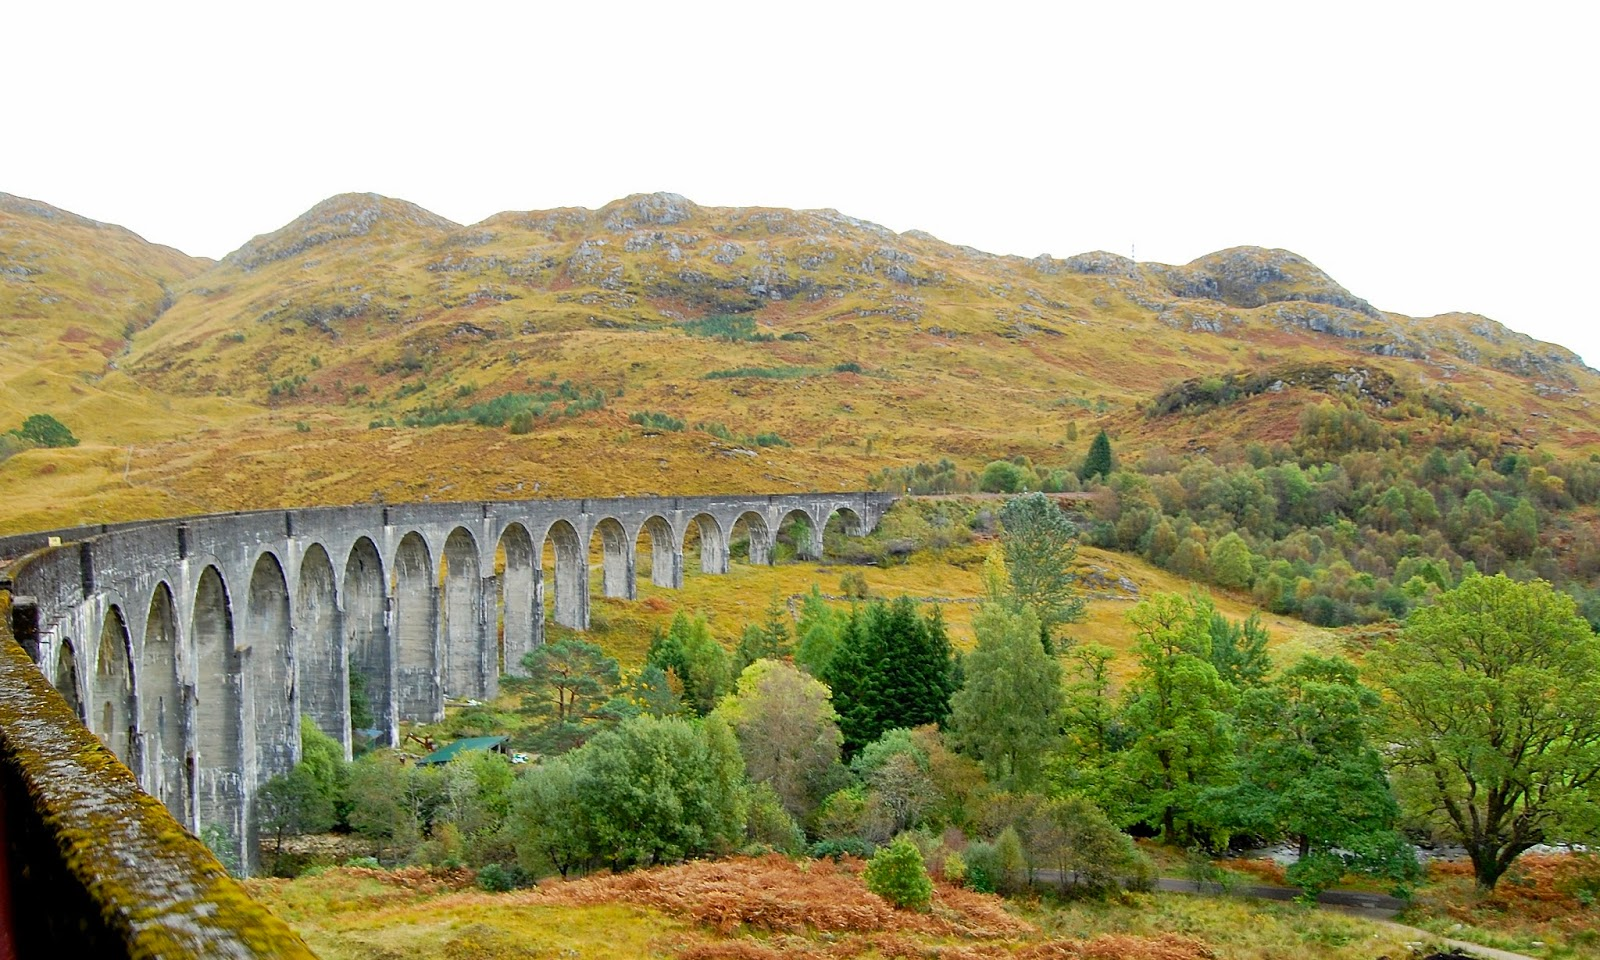 Leaving the Glenfinnan Viaduct